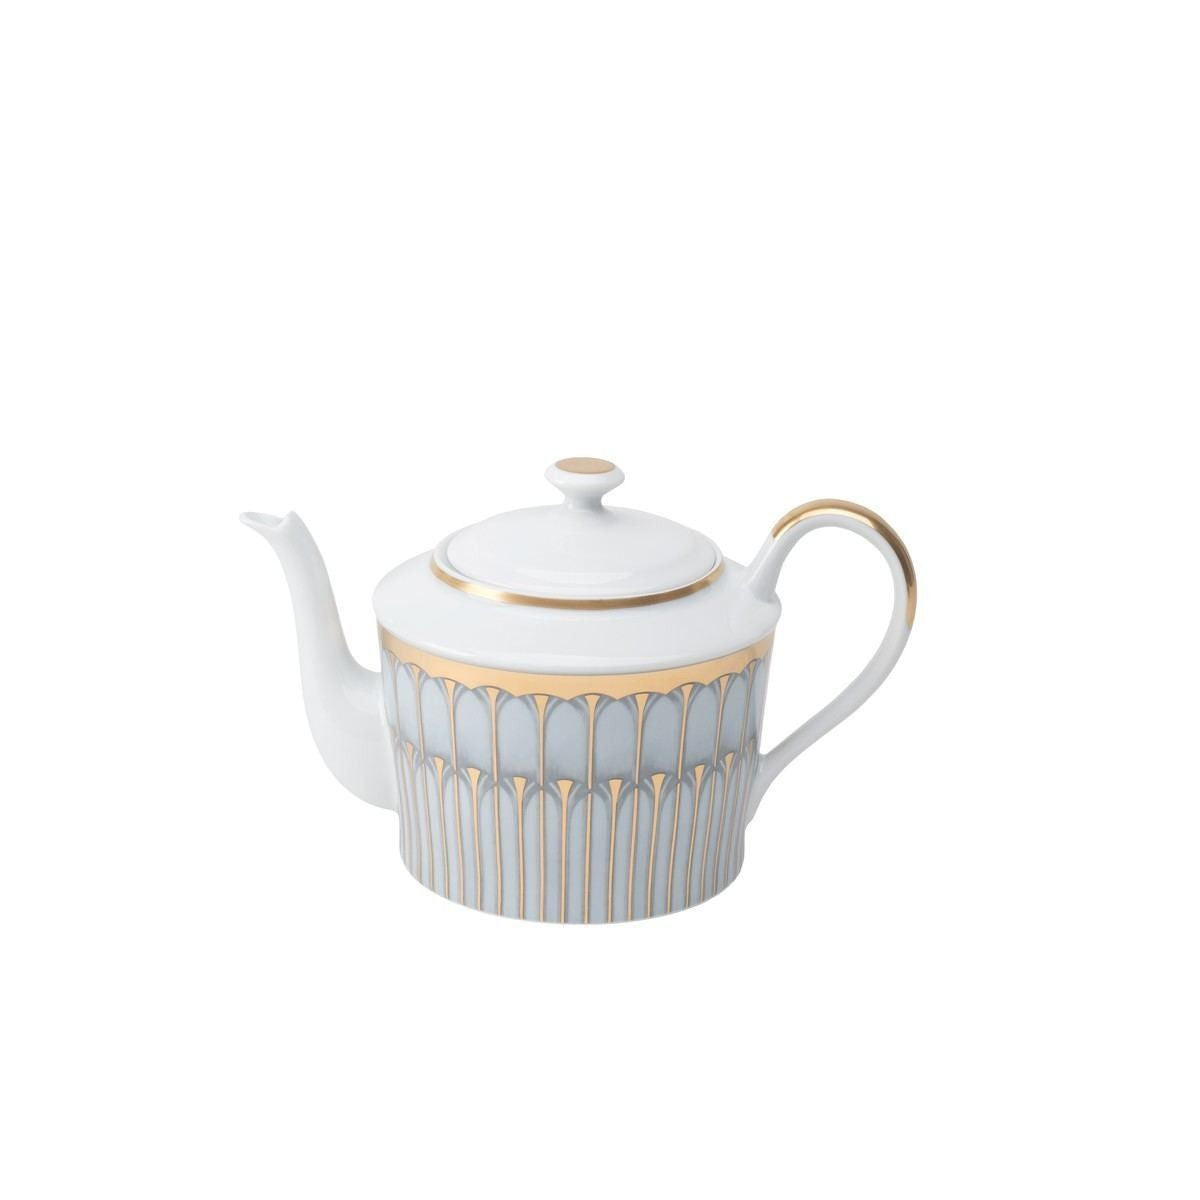 Arcades Grey & Gold Tea Pot